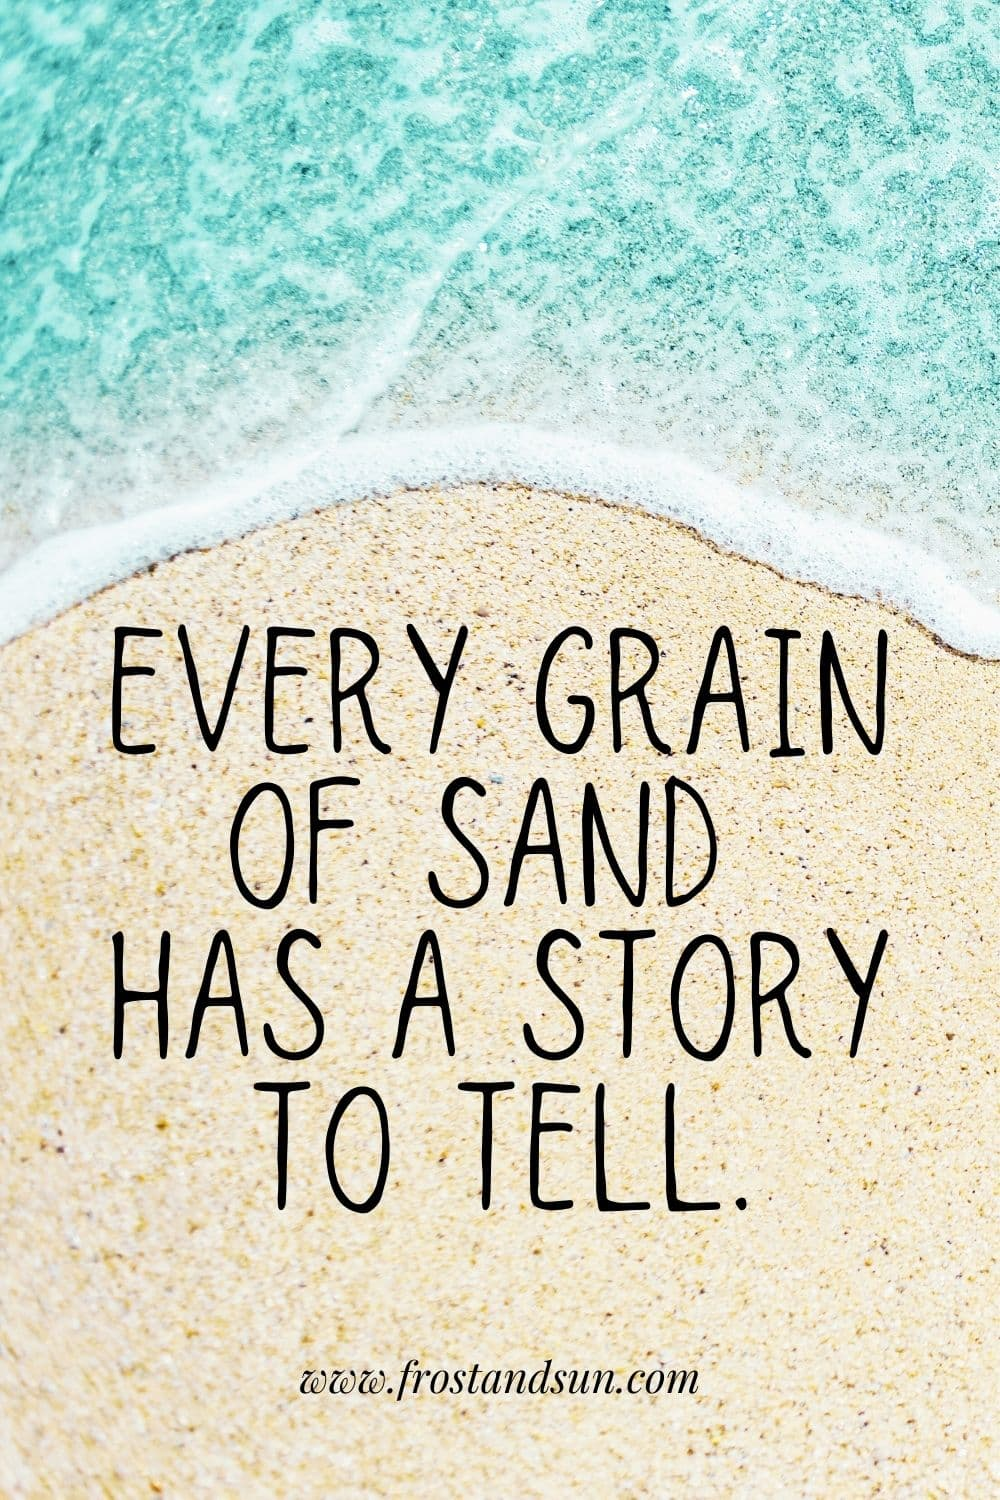 Beach Captions for Instagram: 100+ Fun & Engaging Options